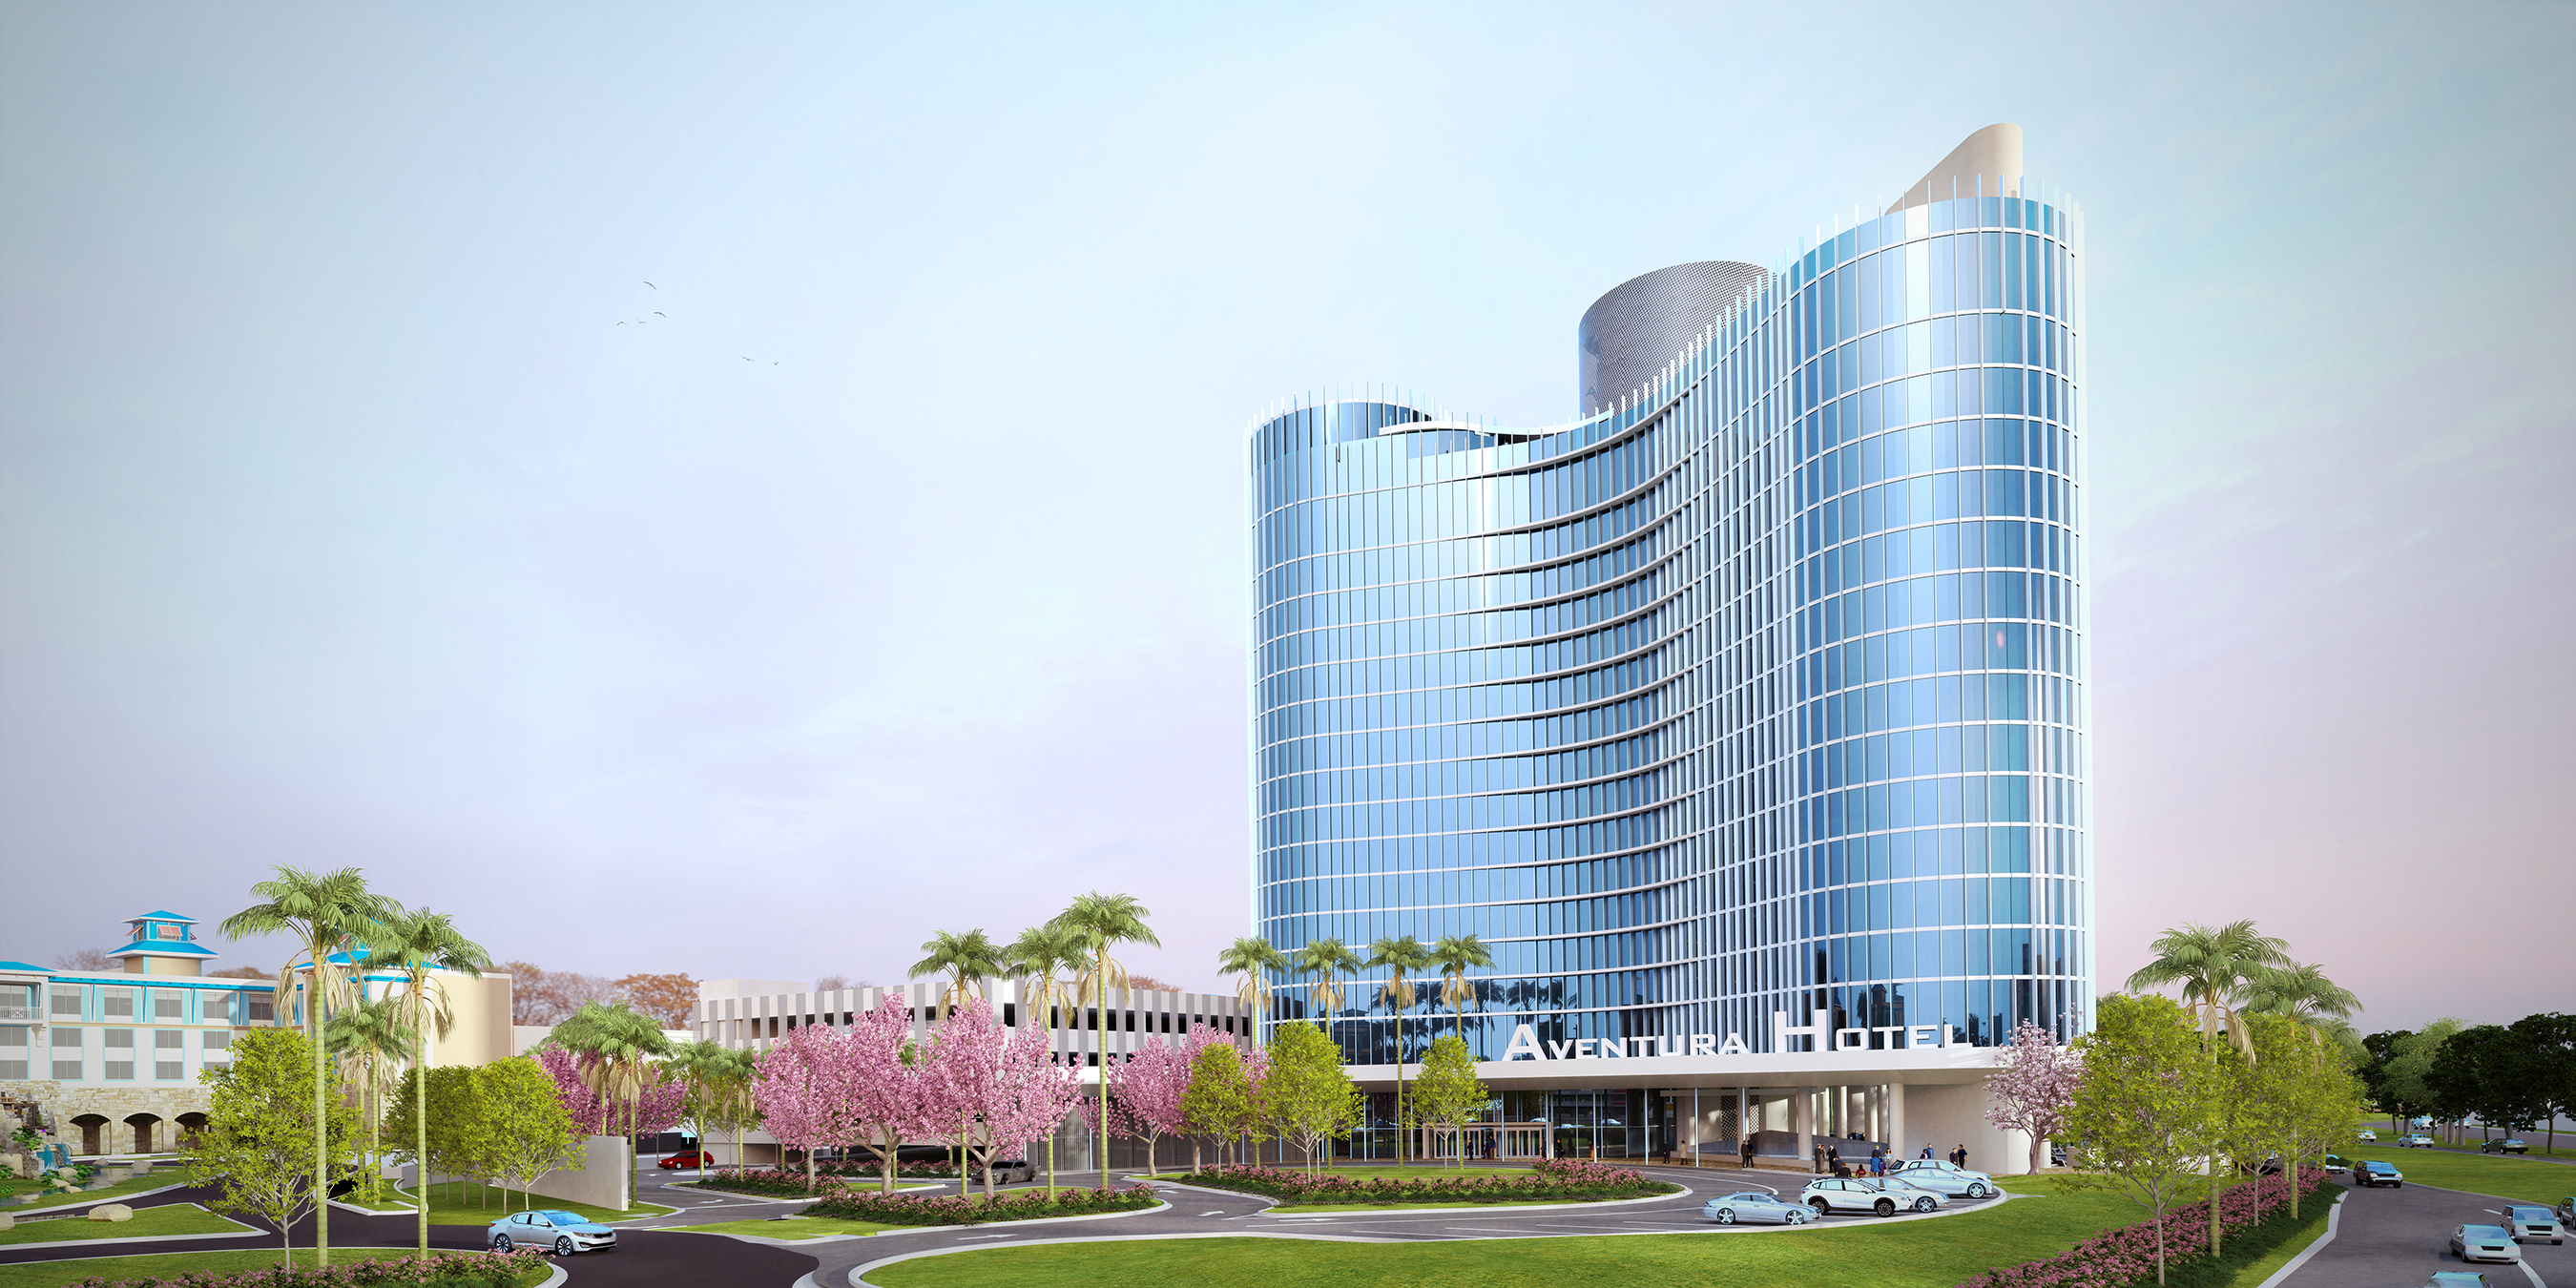 Universal's Aventura Hotel will offer a rooftop bar and grill when it opens in 2018.